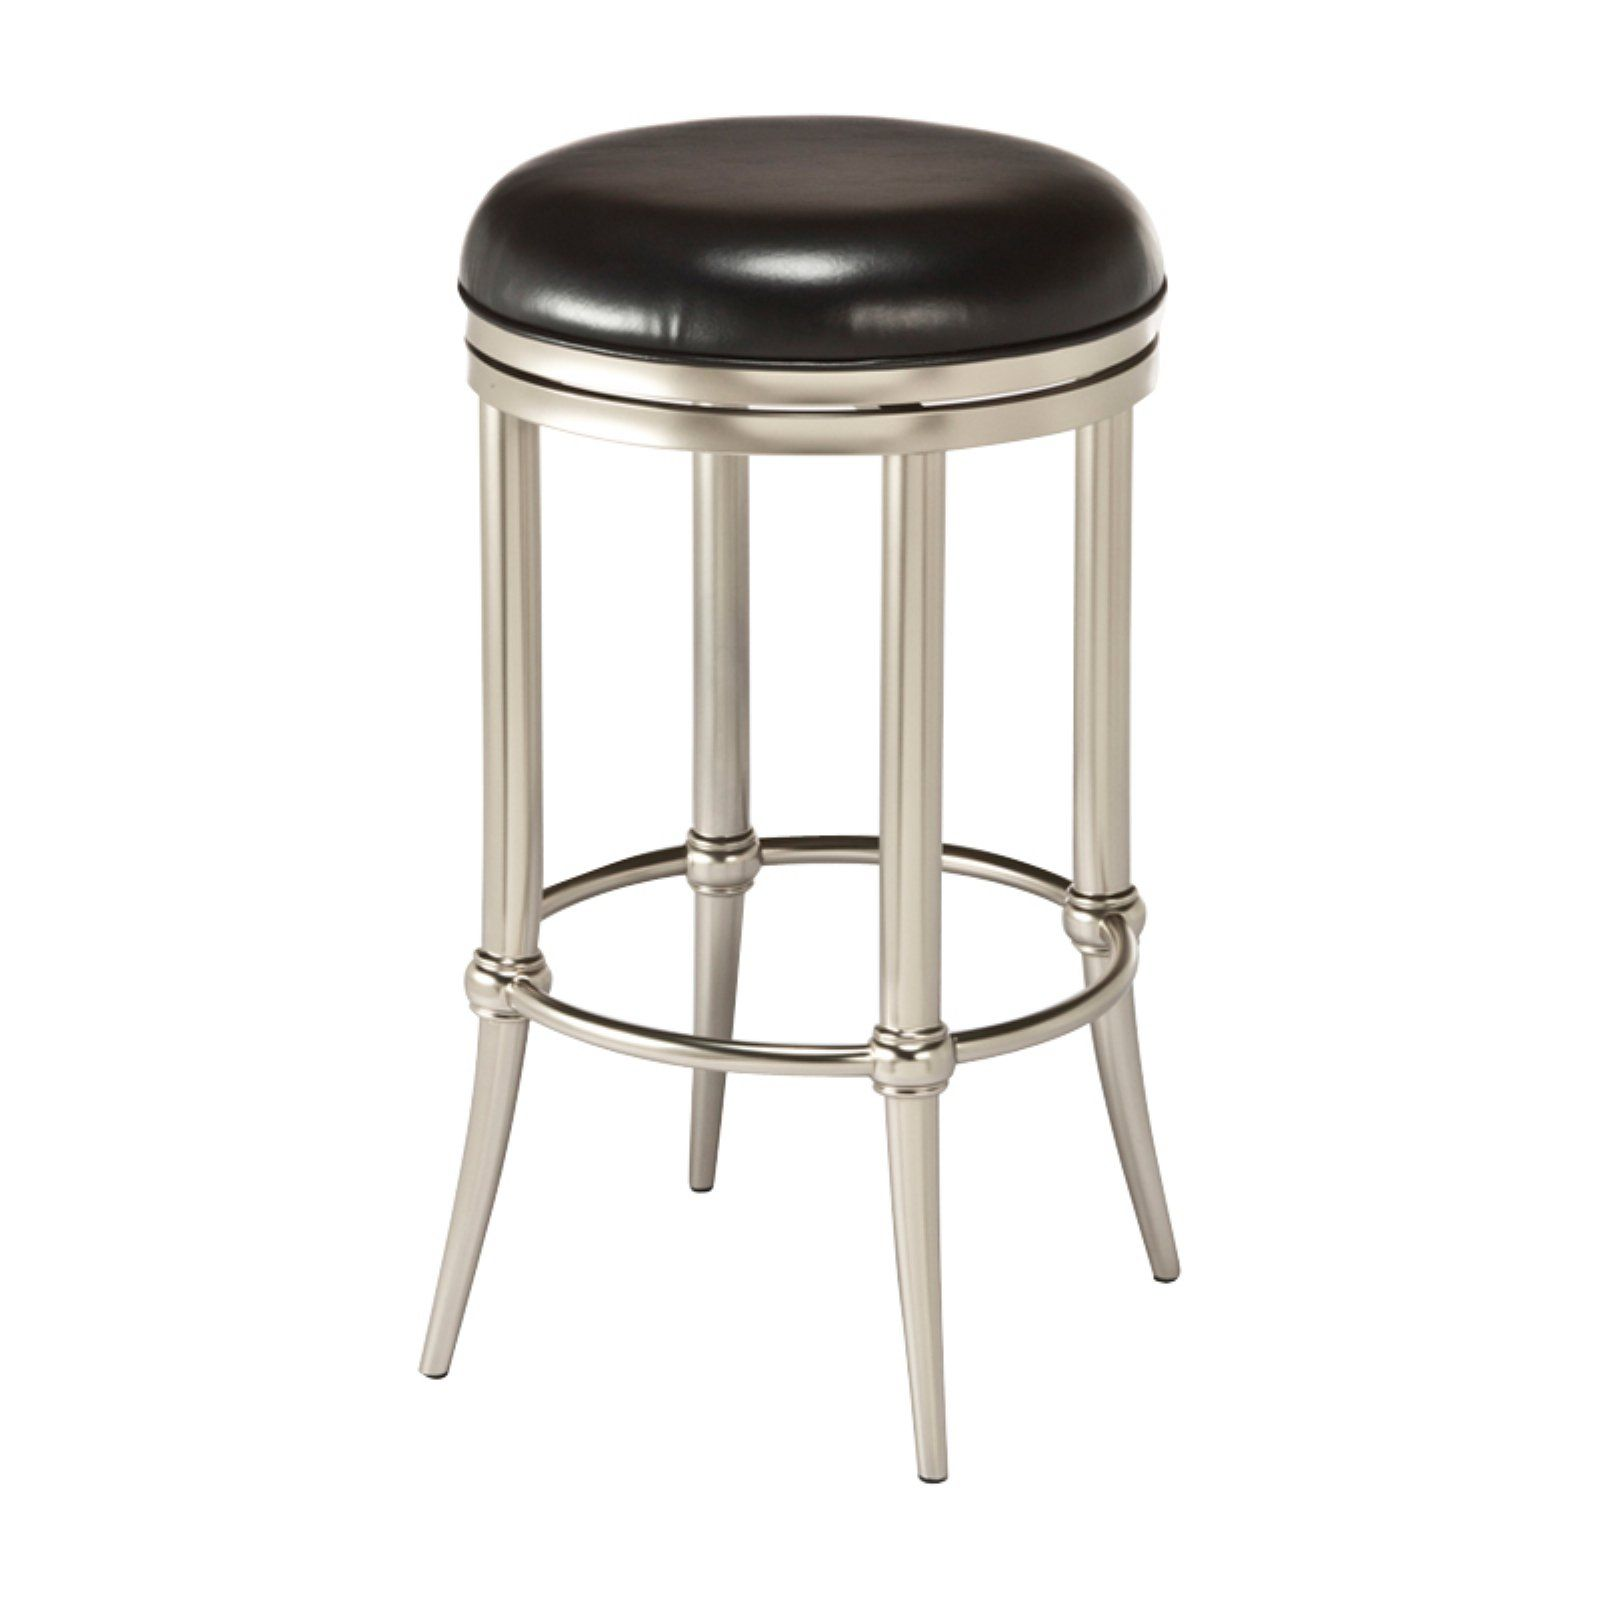 Hillsdale Cadman Backless Dull Nickel Counter Stool Counter Stools Backless Swivel Counter Stools Backless Bar Stools